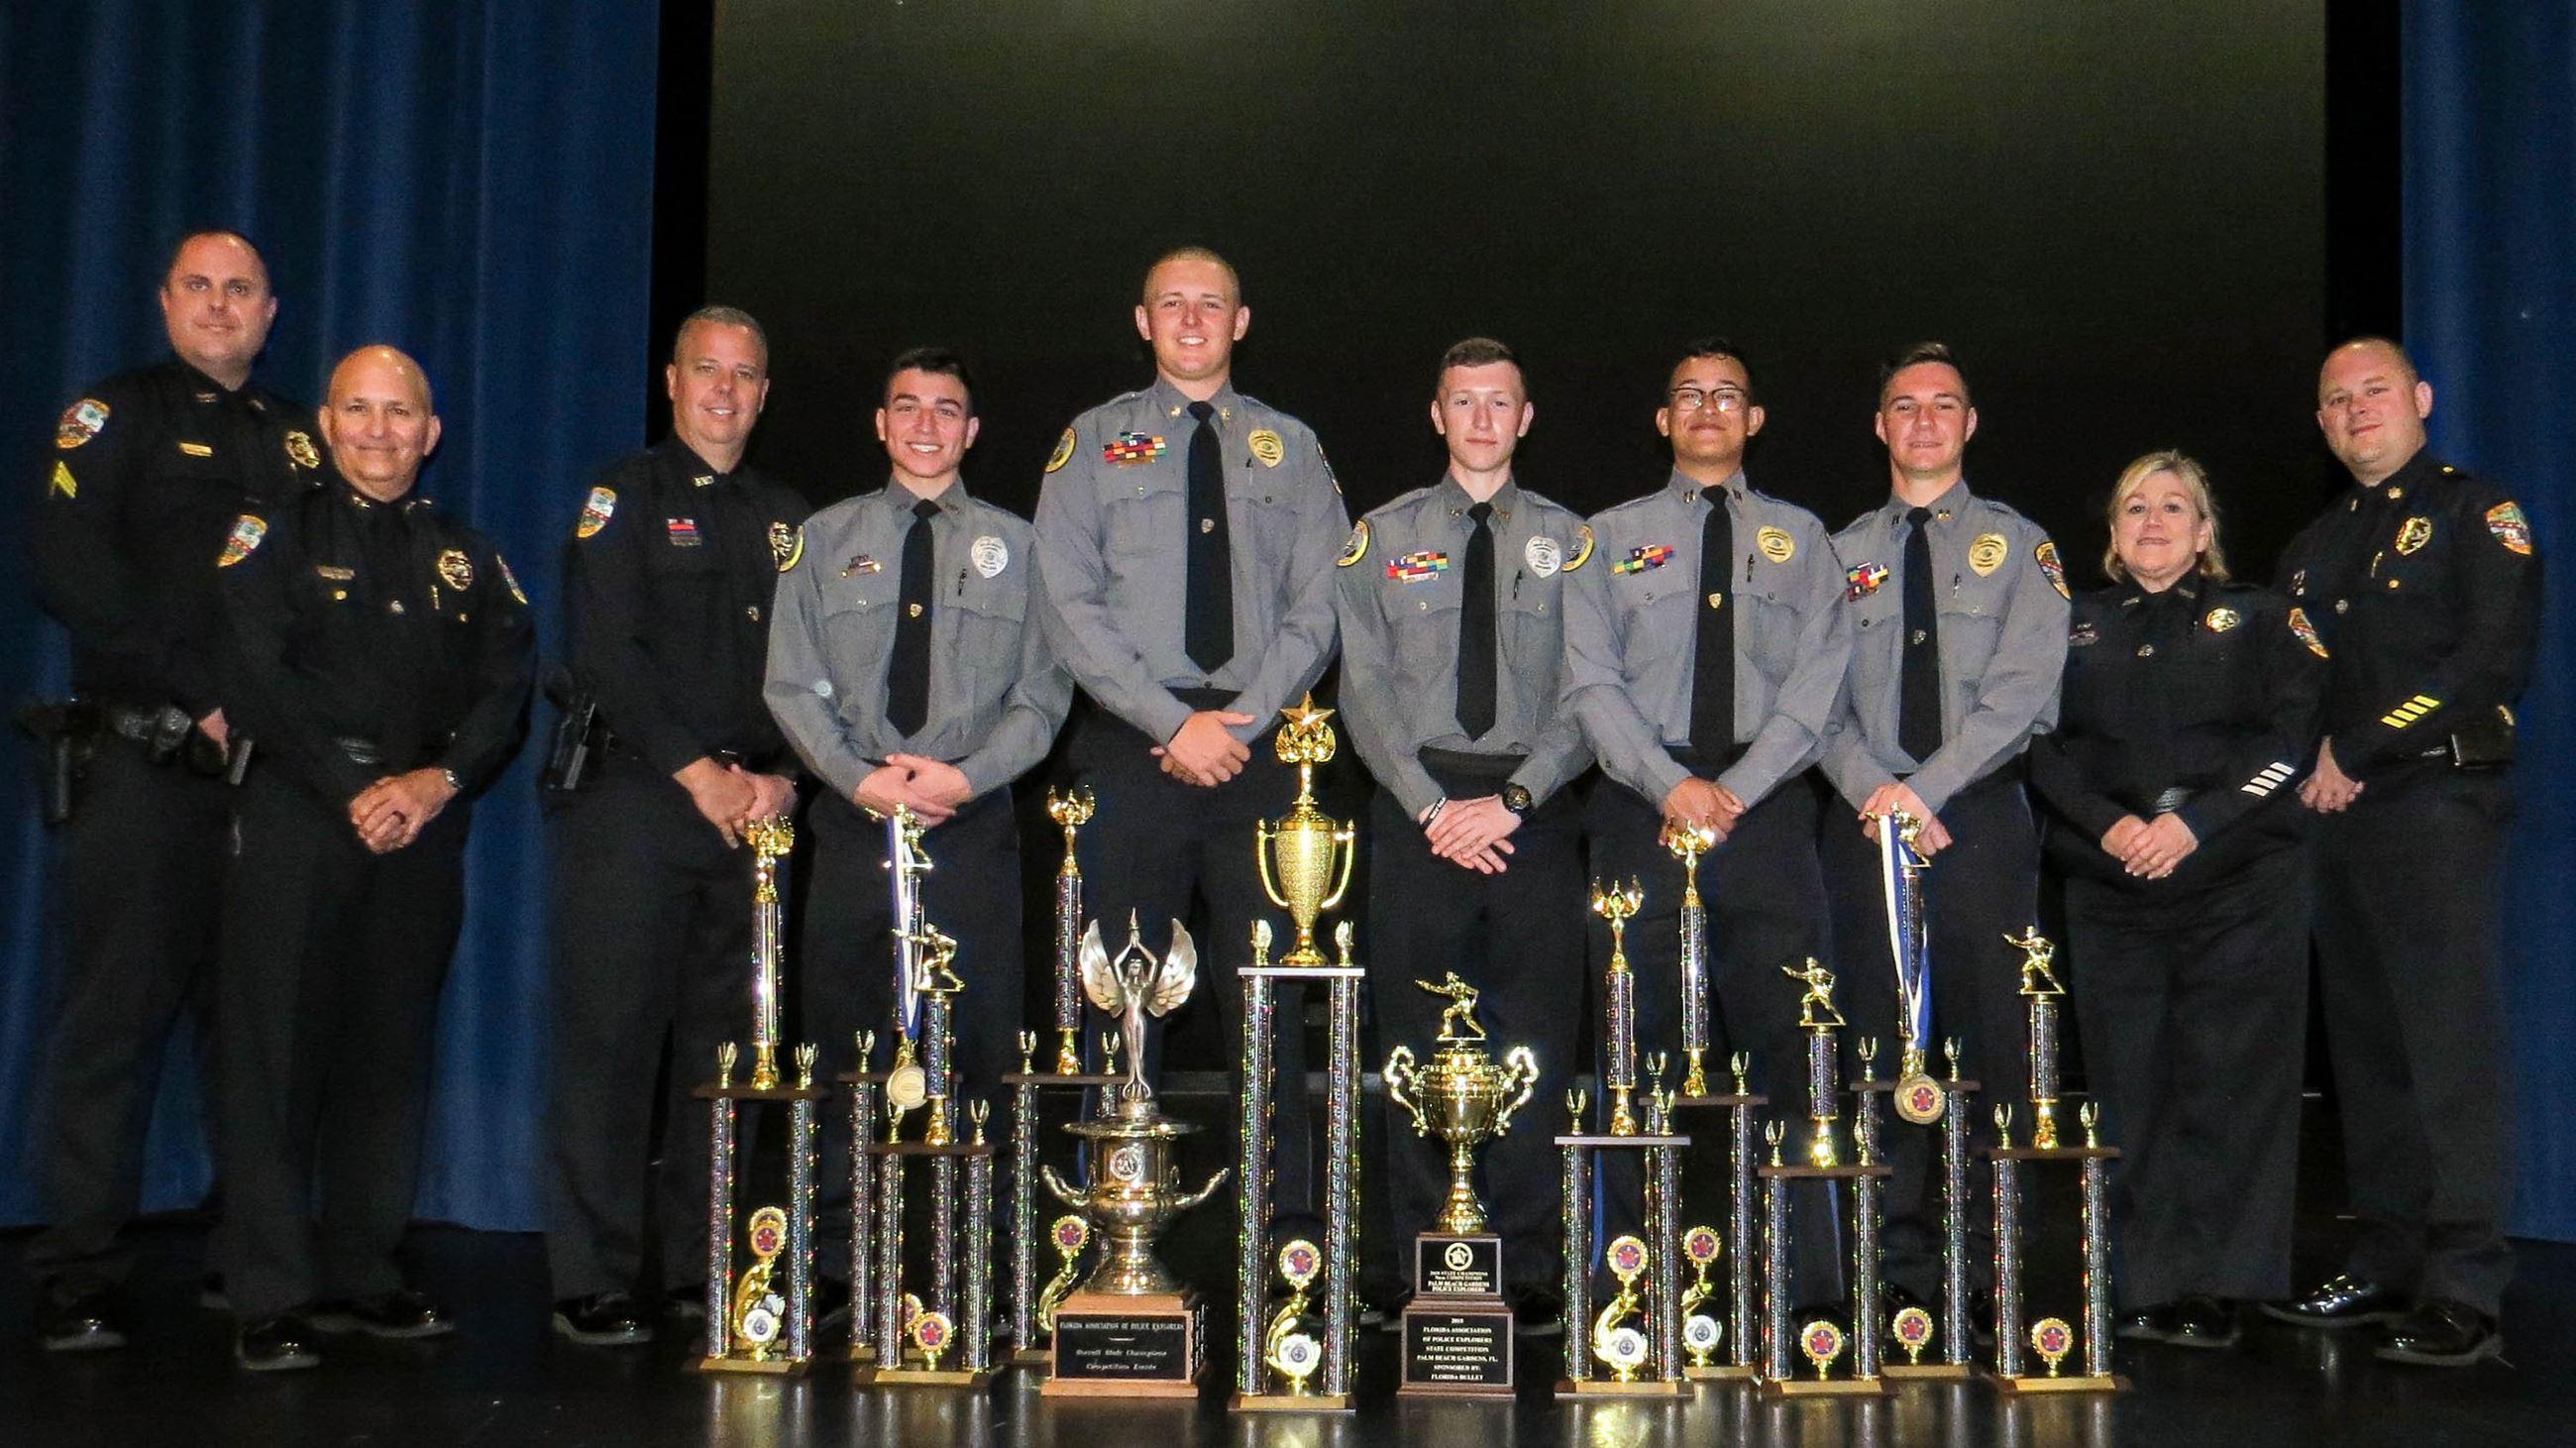 Police Explorers Displaying Trophies from State Competition